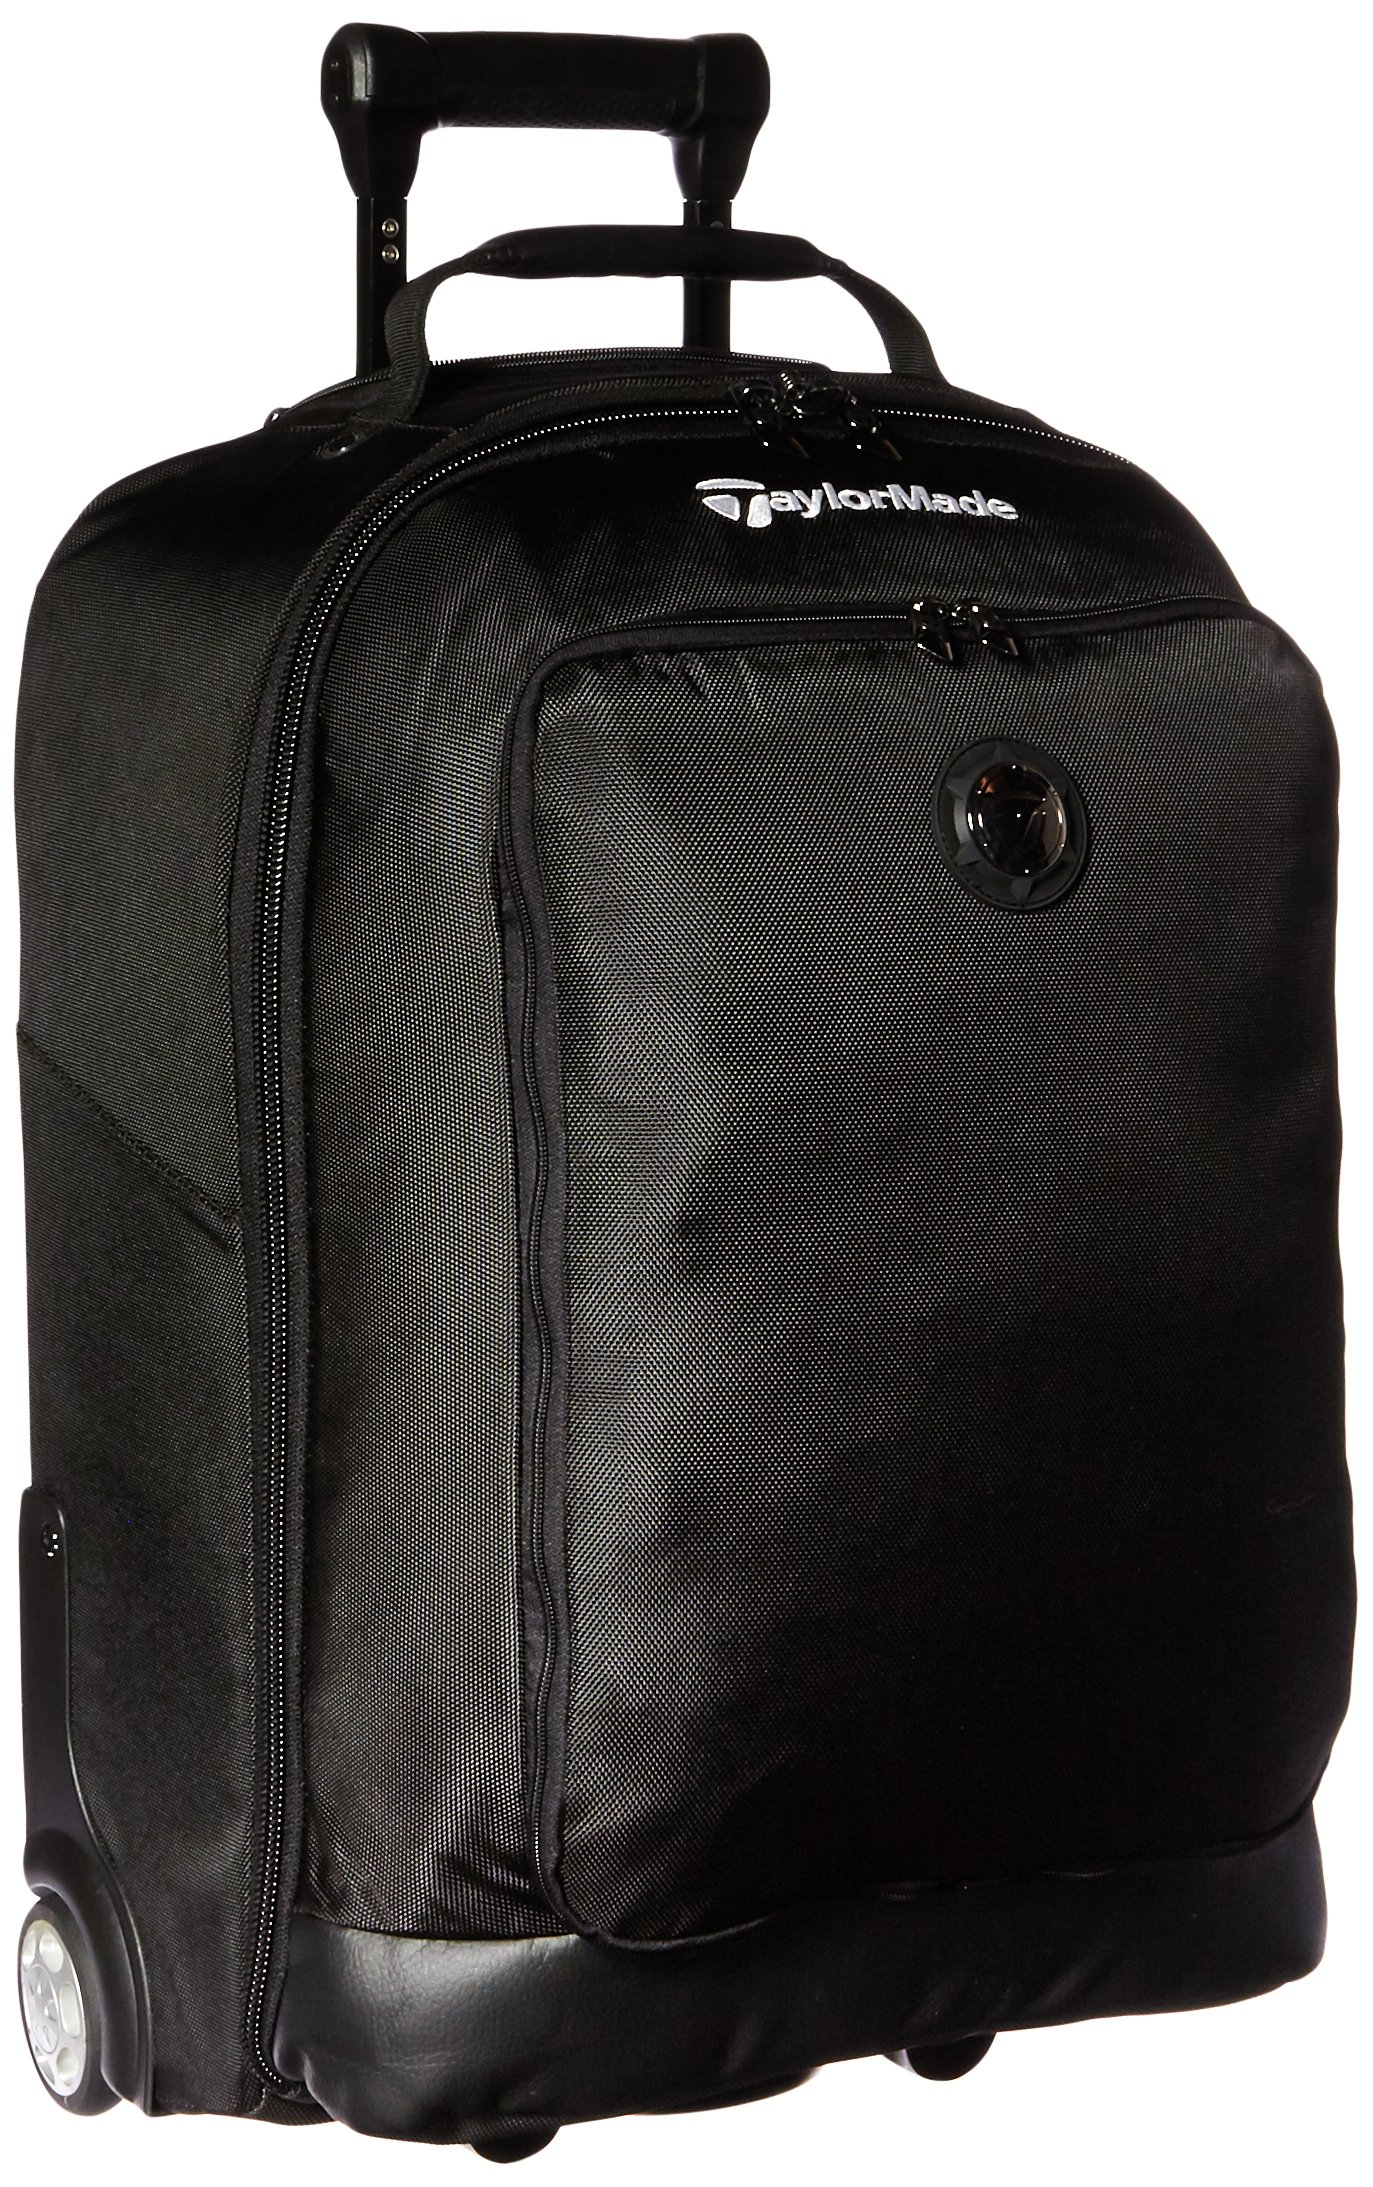 TaylorMade 2013 Players Rolling Carry-On Bag